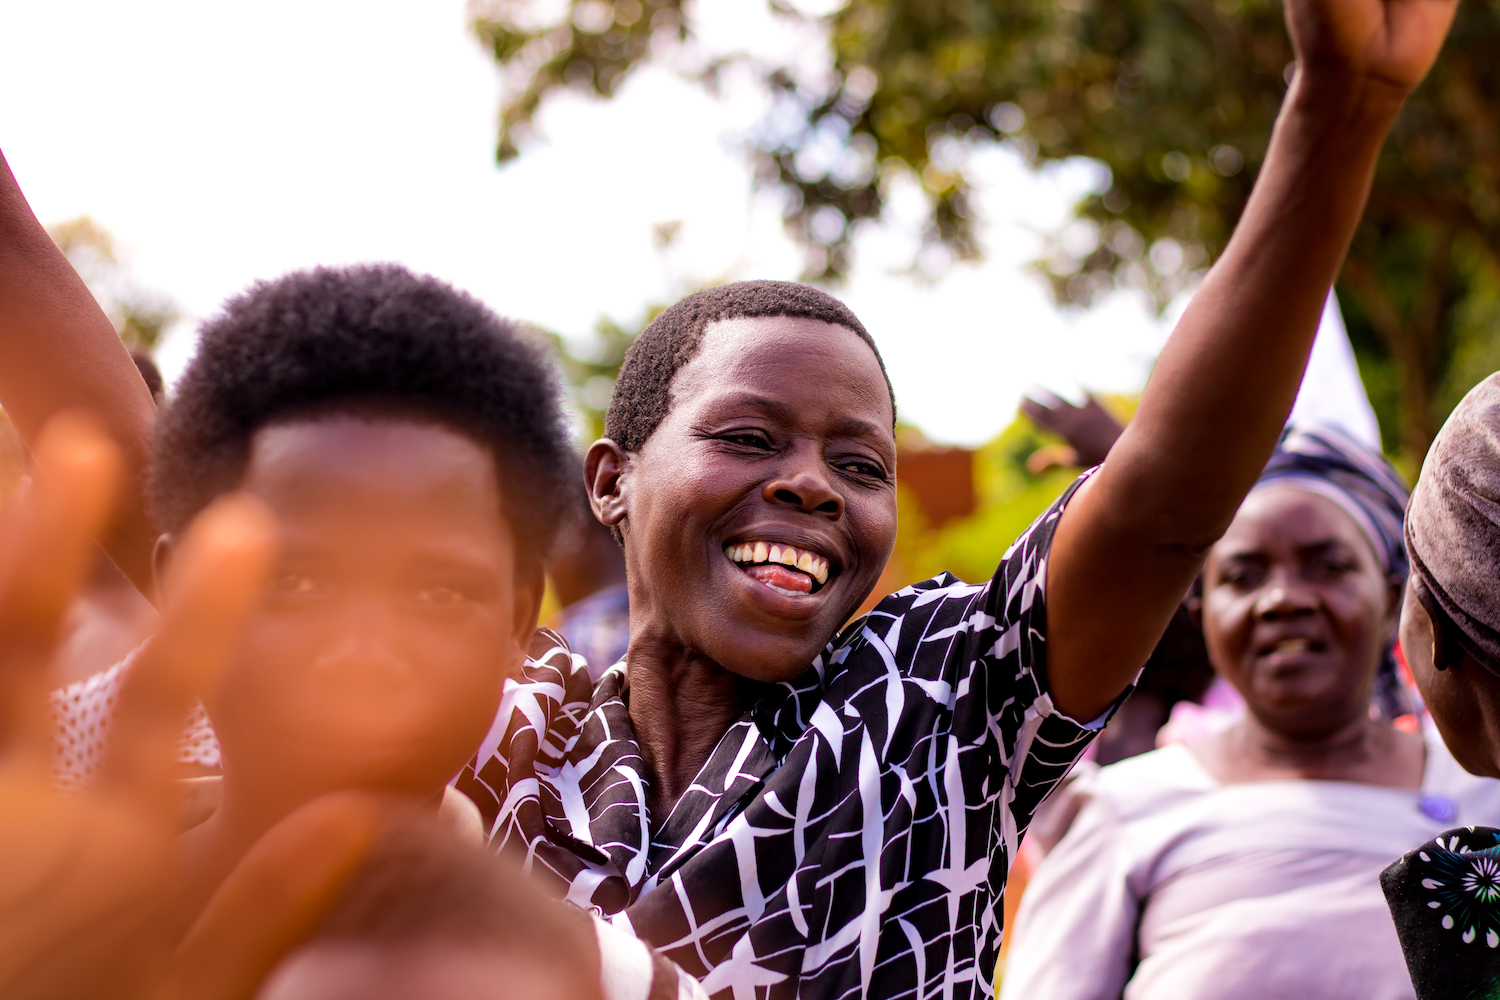 Personal hygiene  – We educate community members about personal health and sanitation, including burn treatments, shaving, and self-care during menstruation and pregnancy.